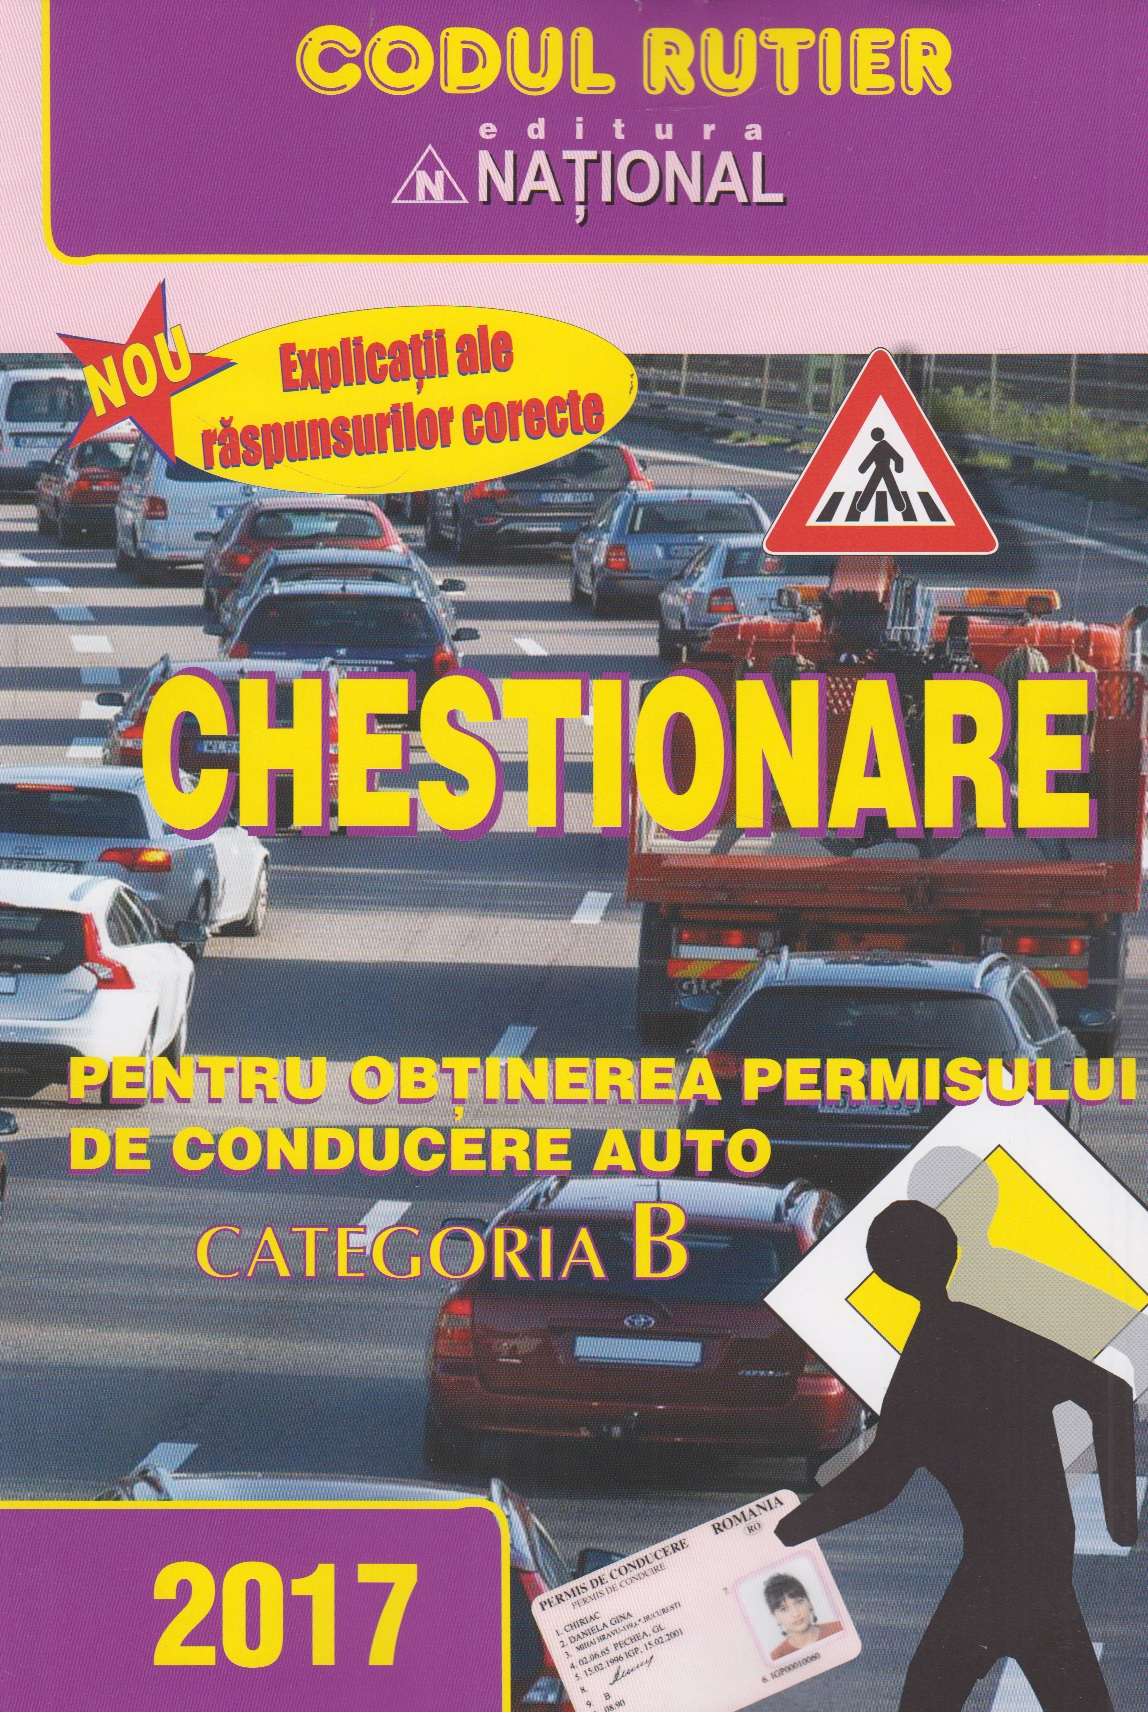 Chestionare pentru obtinerea permisului conducere